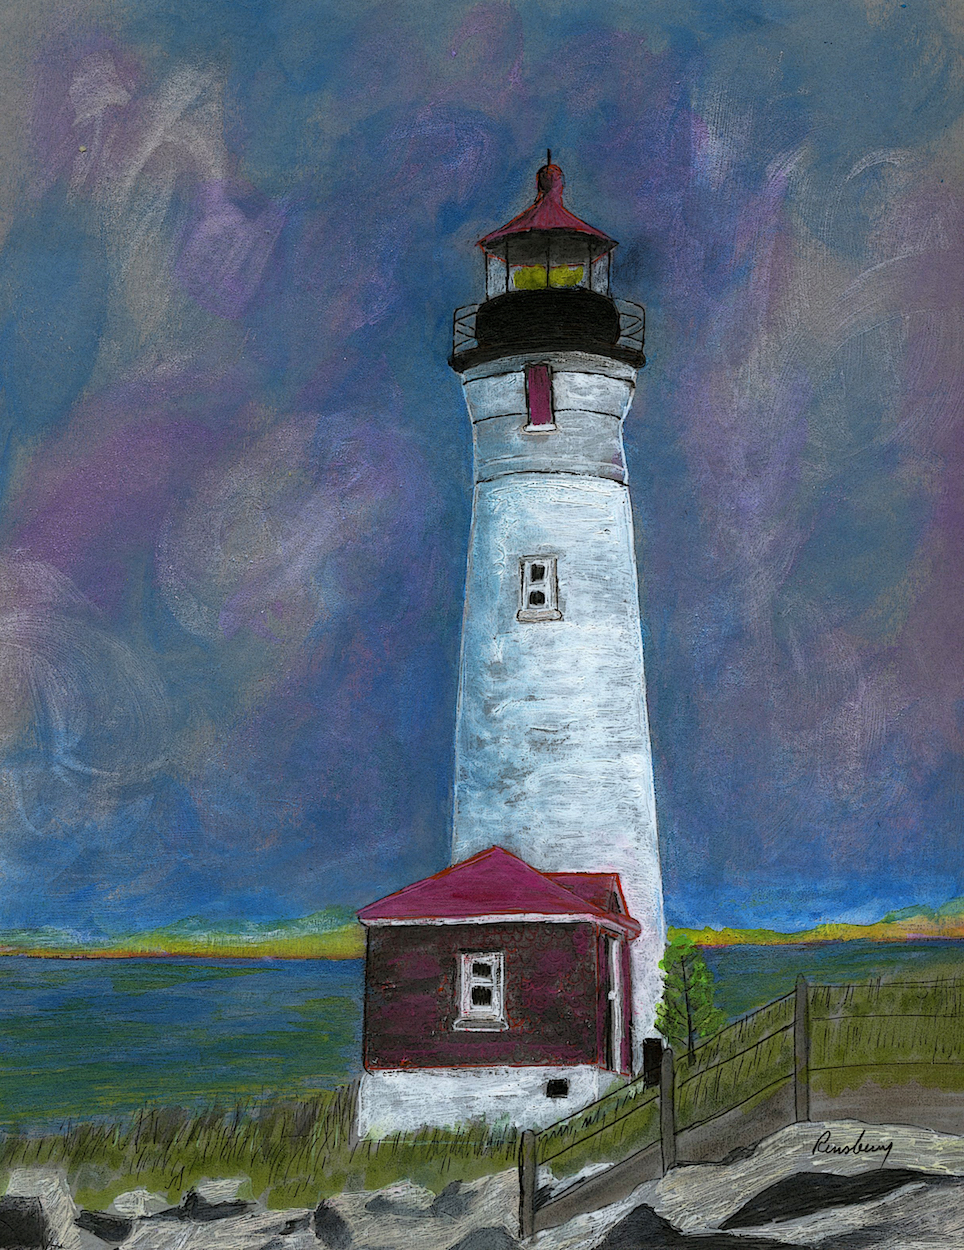 Crisp Point Lighthouse art print of painting by Michigan artist and author Richard Rensberry